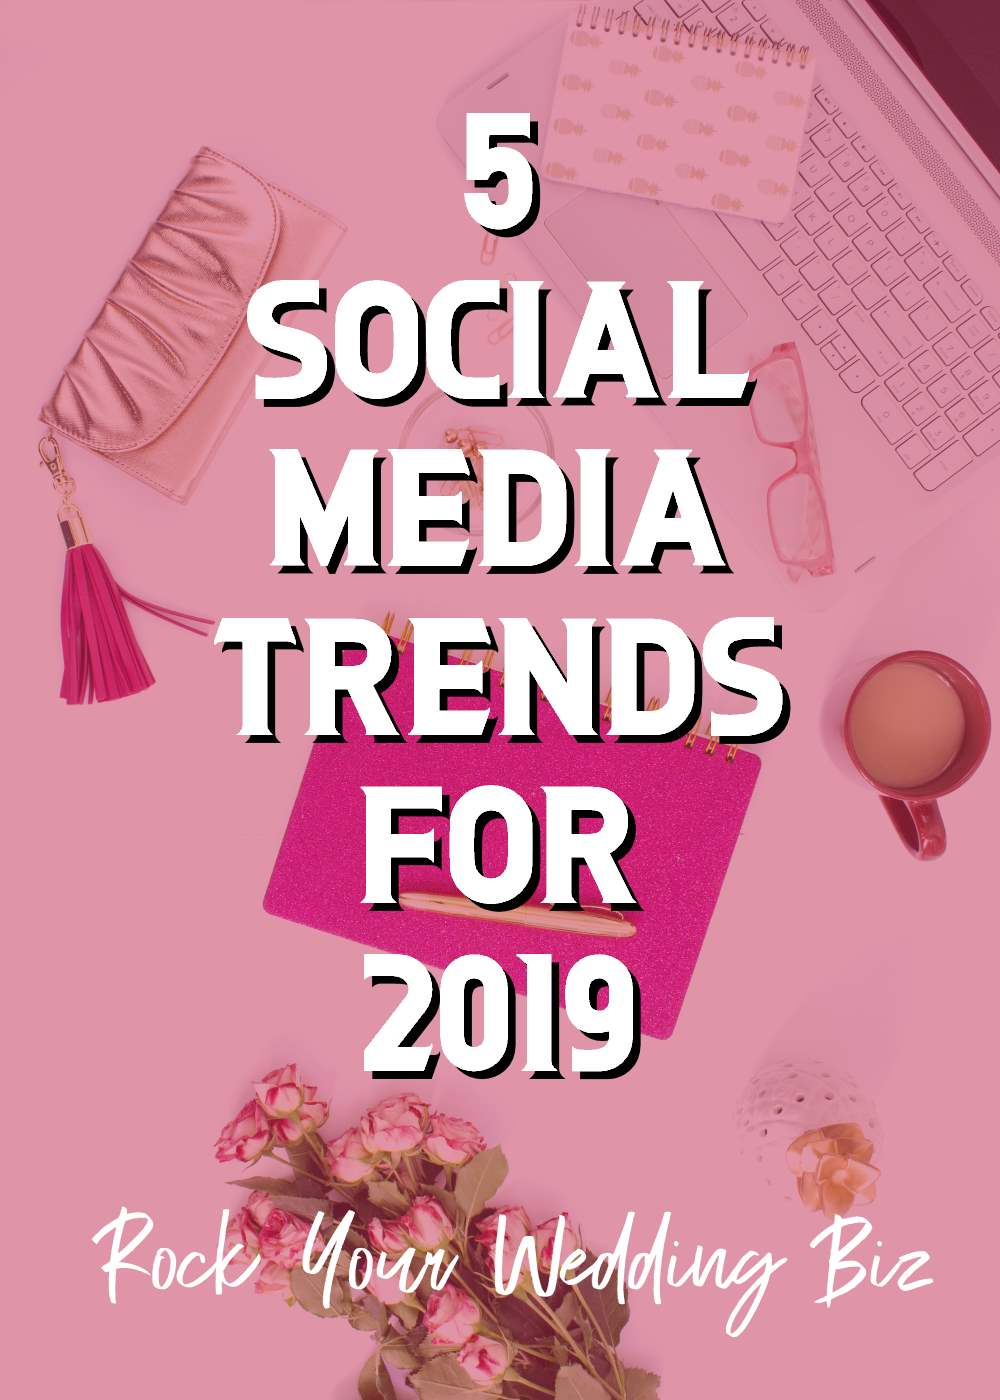 Episode 33 - 5 Social Media Trends for 2019